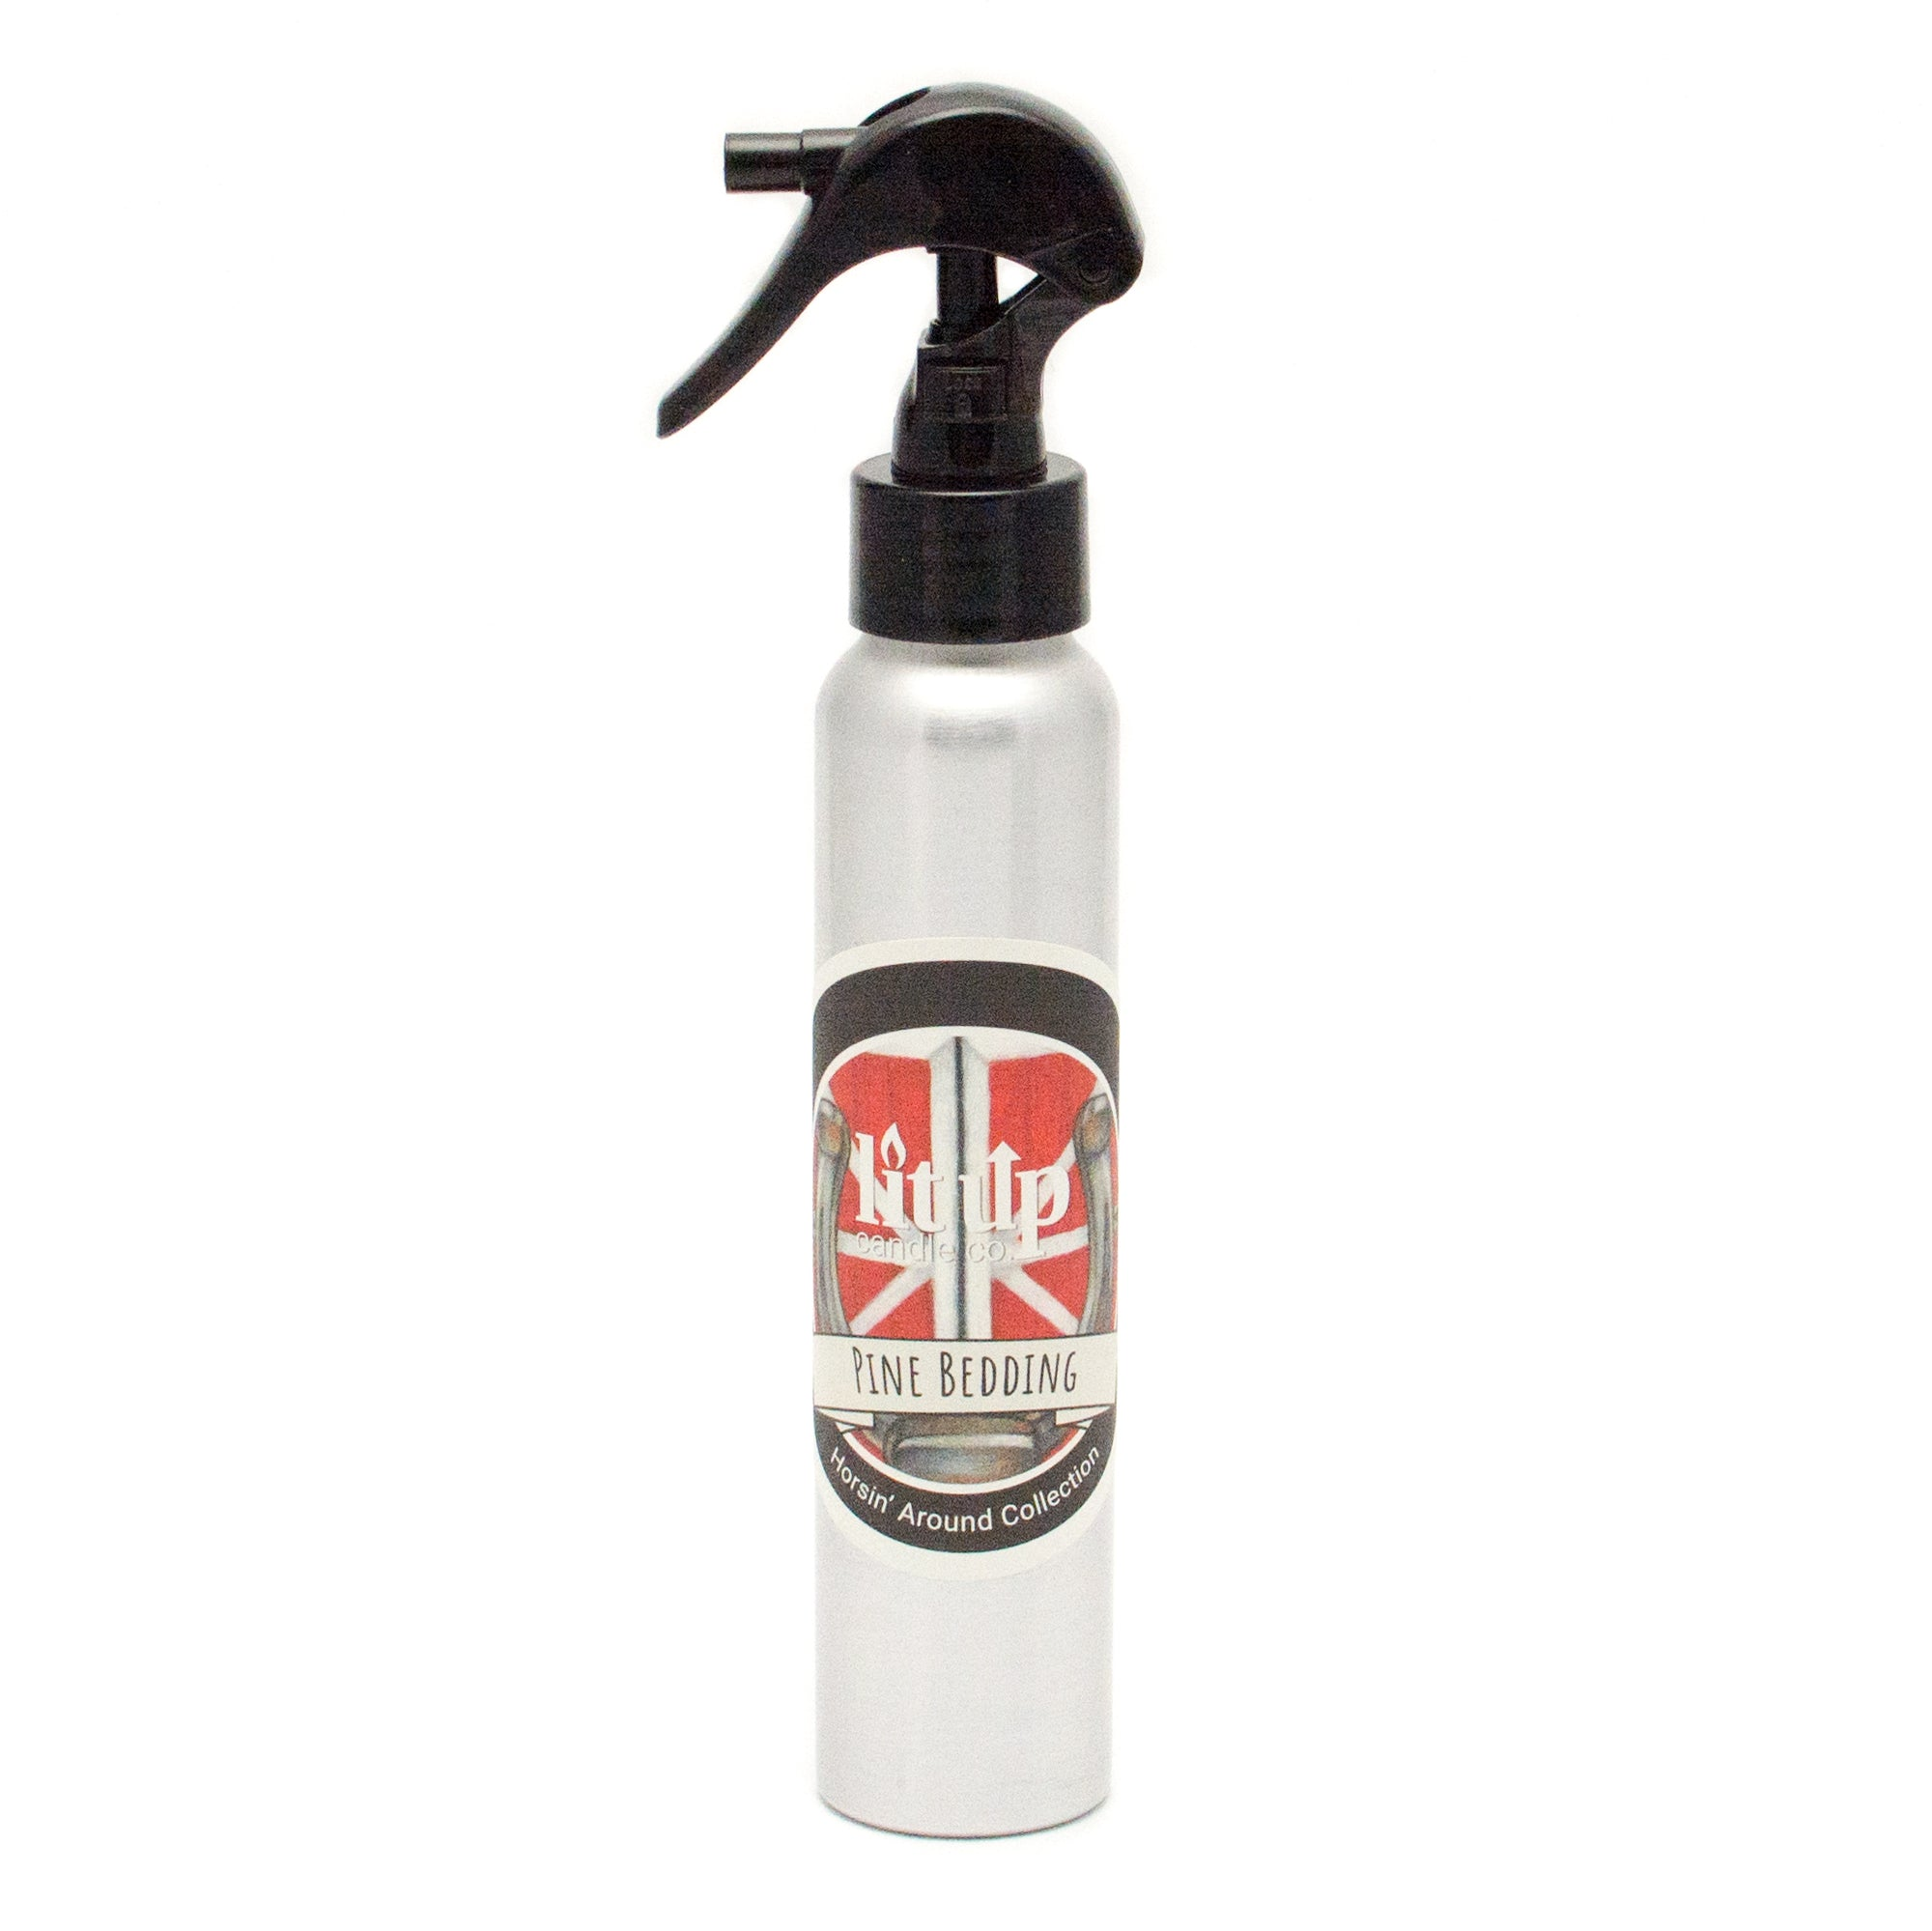 Pine Bedding Room Spray